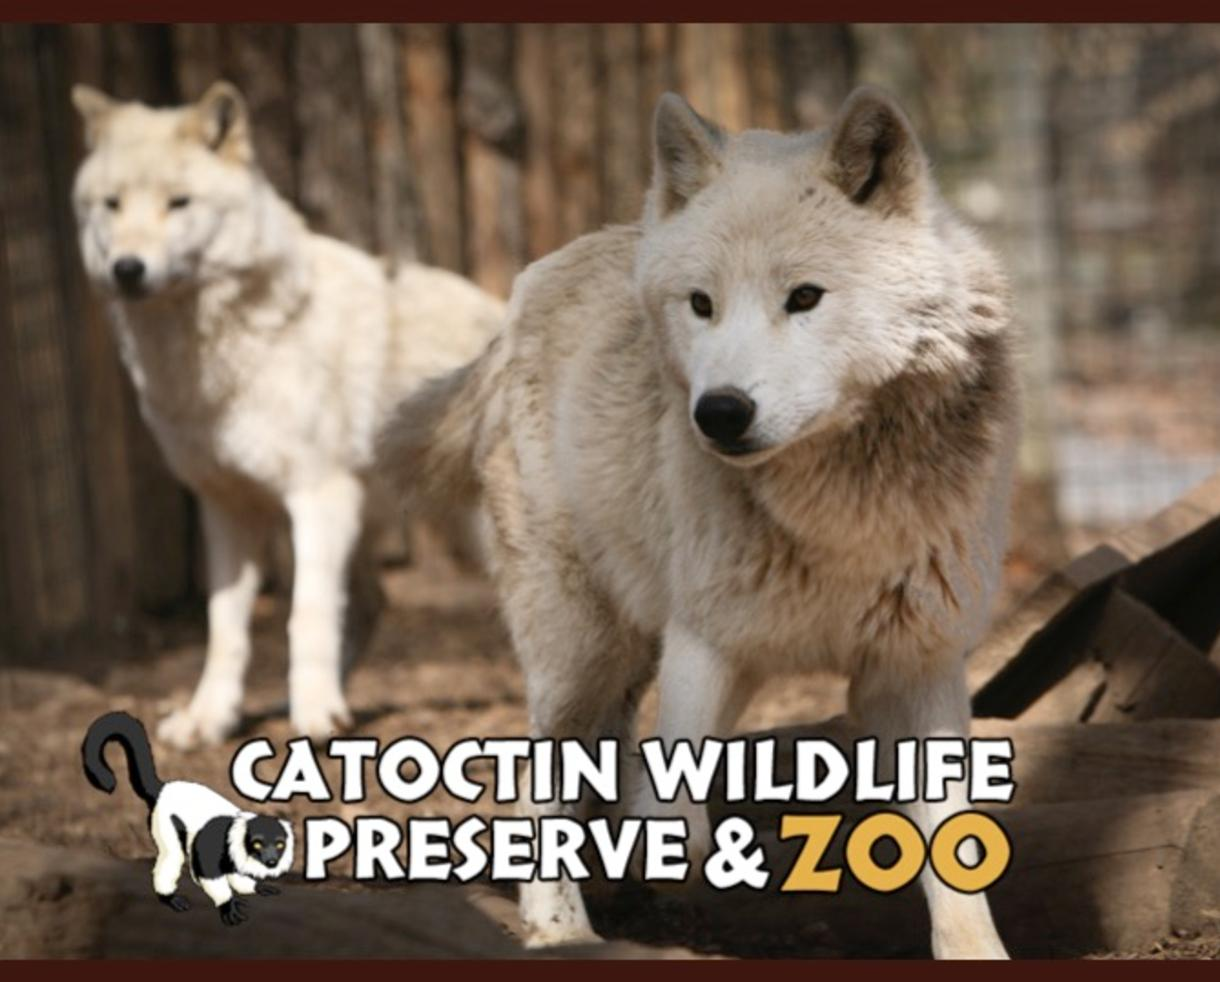 $16 for 1 Adult and 1 Child Admission to the Catoctin Zoo (50% Off)